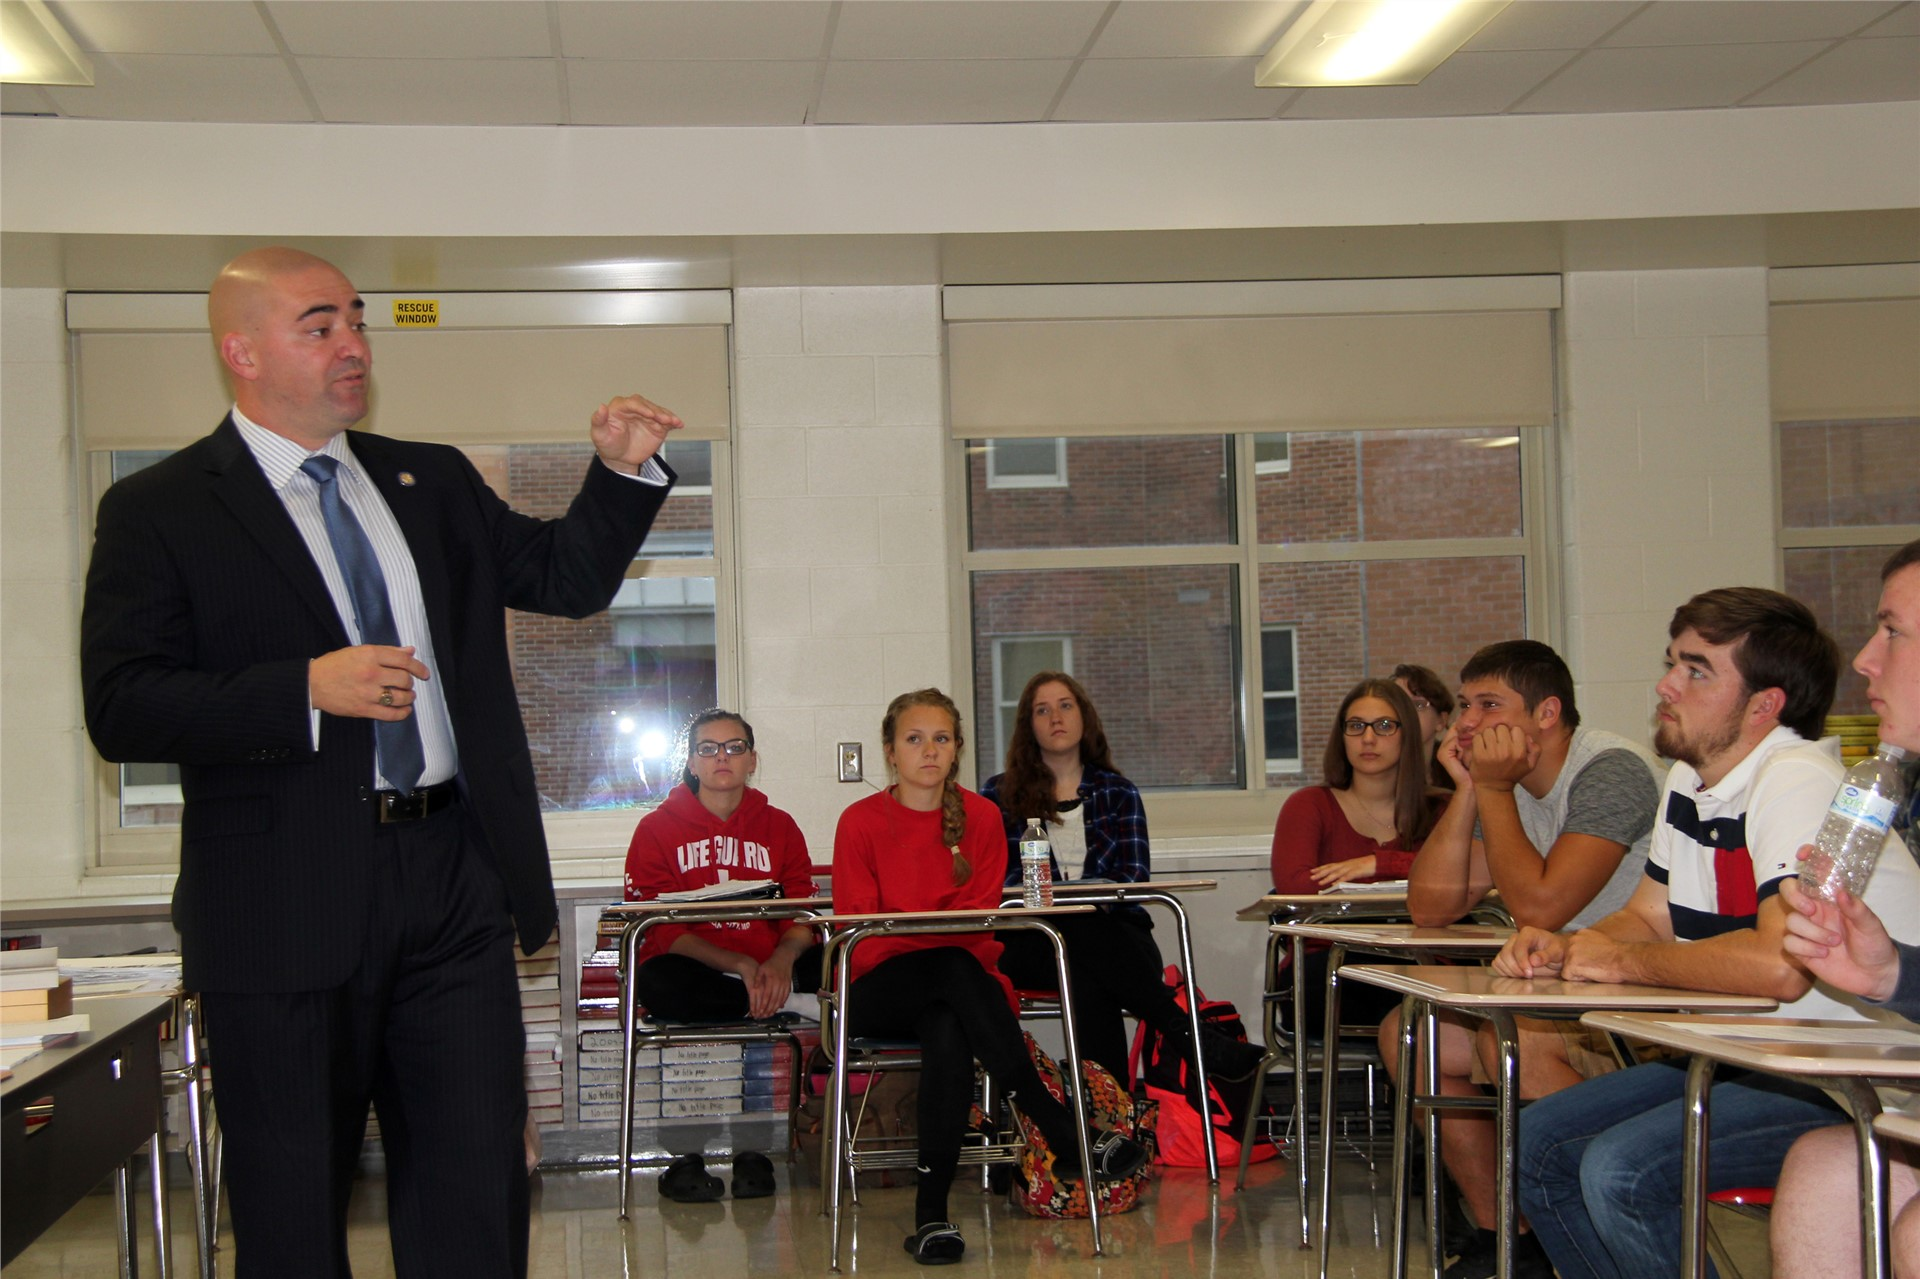 senator akshar talking to students in classroom